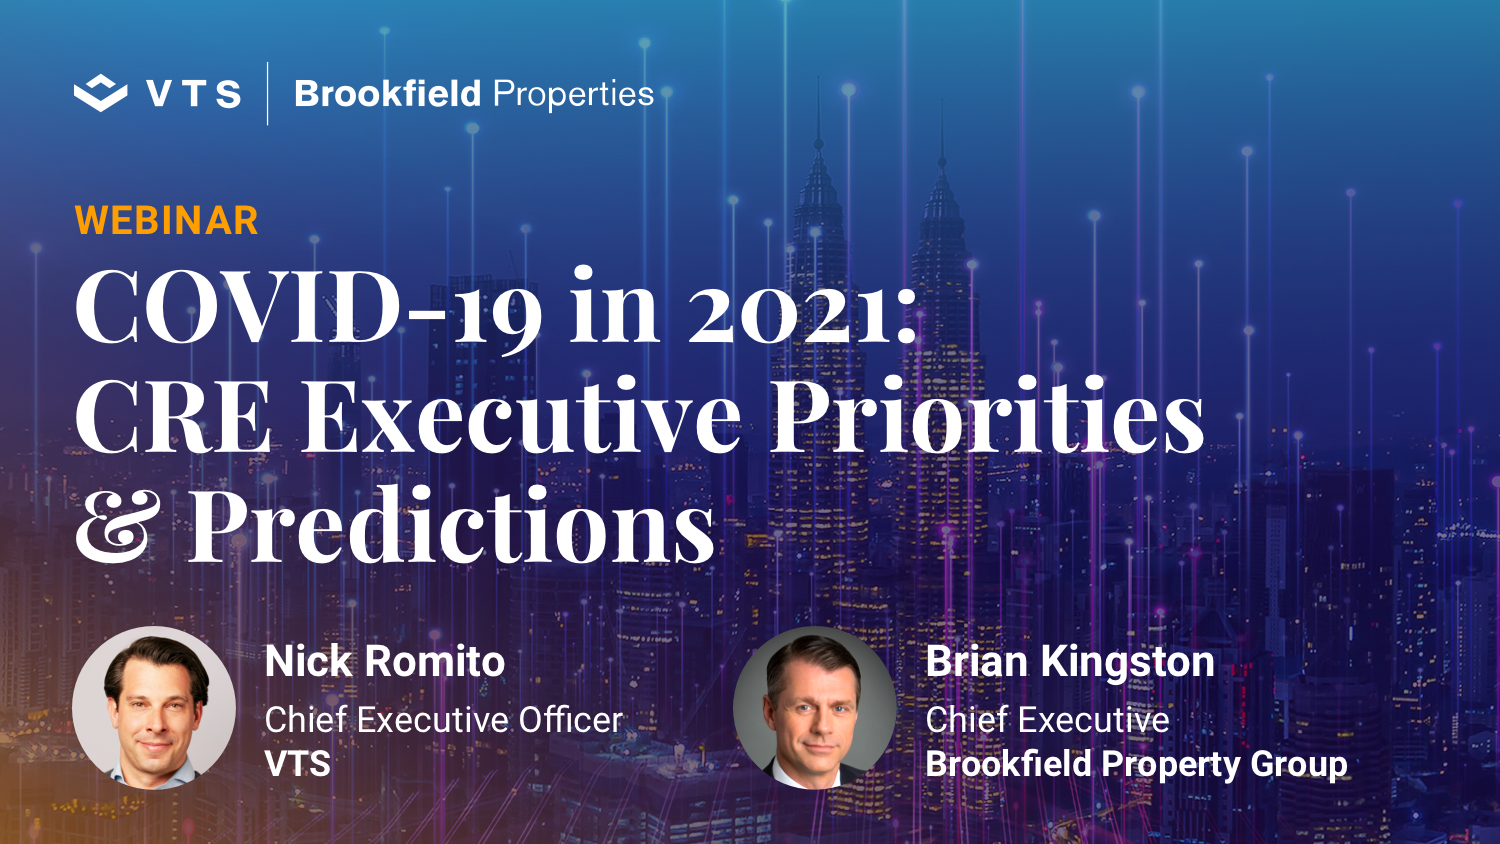 COVID-19 in 2021 - CRE Executive Priorities and Perspectives